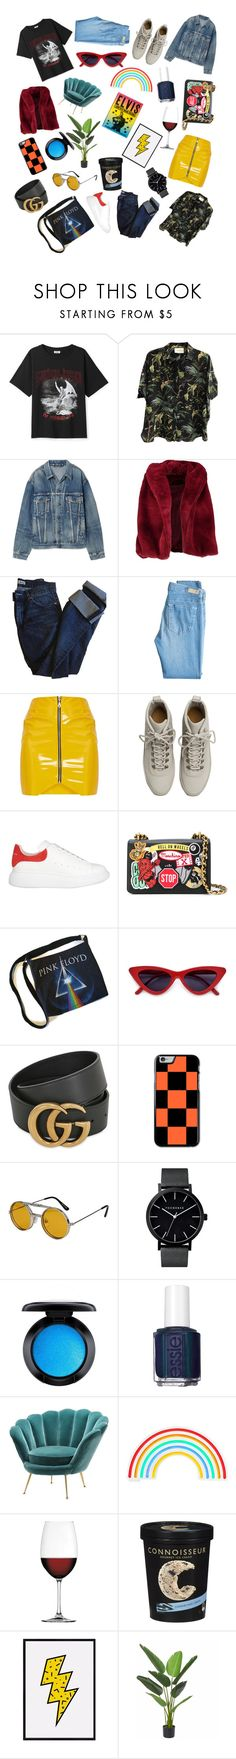 """""""rock n roll"""" by charleyjadesalter ❤ liked on Polyvore featuring Gucci, Balenciaga, Boohoo, Acne Studios, AG Adriano Goldschmied, Fear of God, Alexander McQueen, Moschino, Spitfire and MAC Cosmetics"""